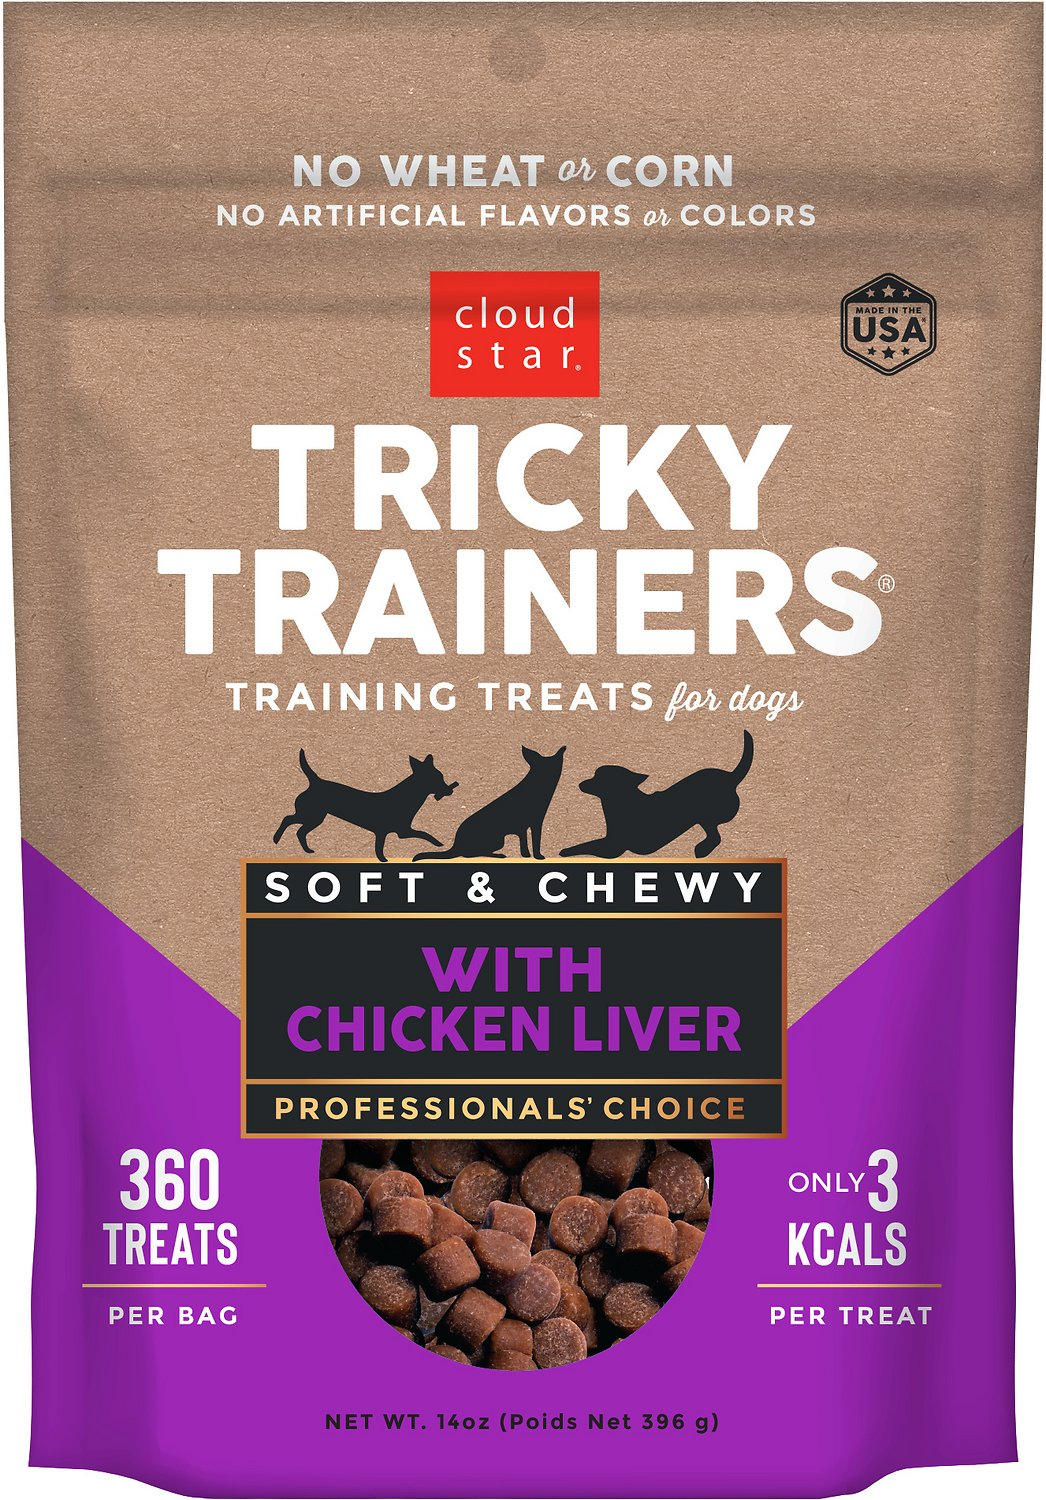 Tricky Trainers Dog Treats